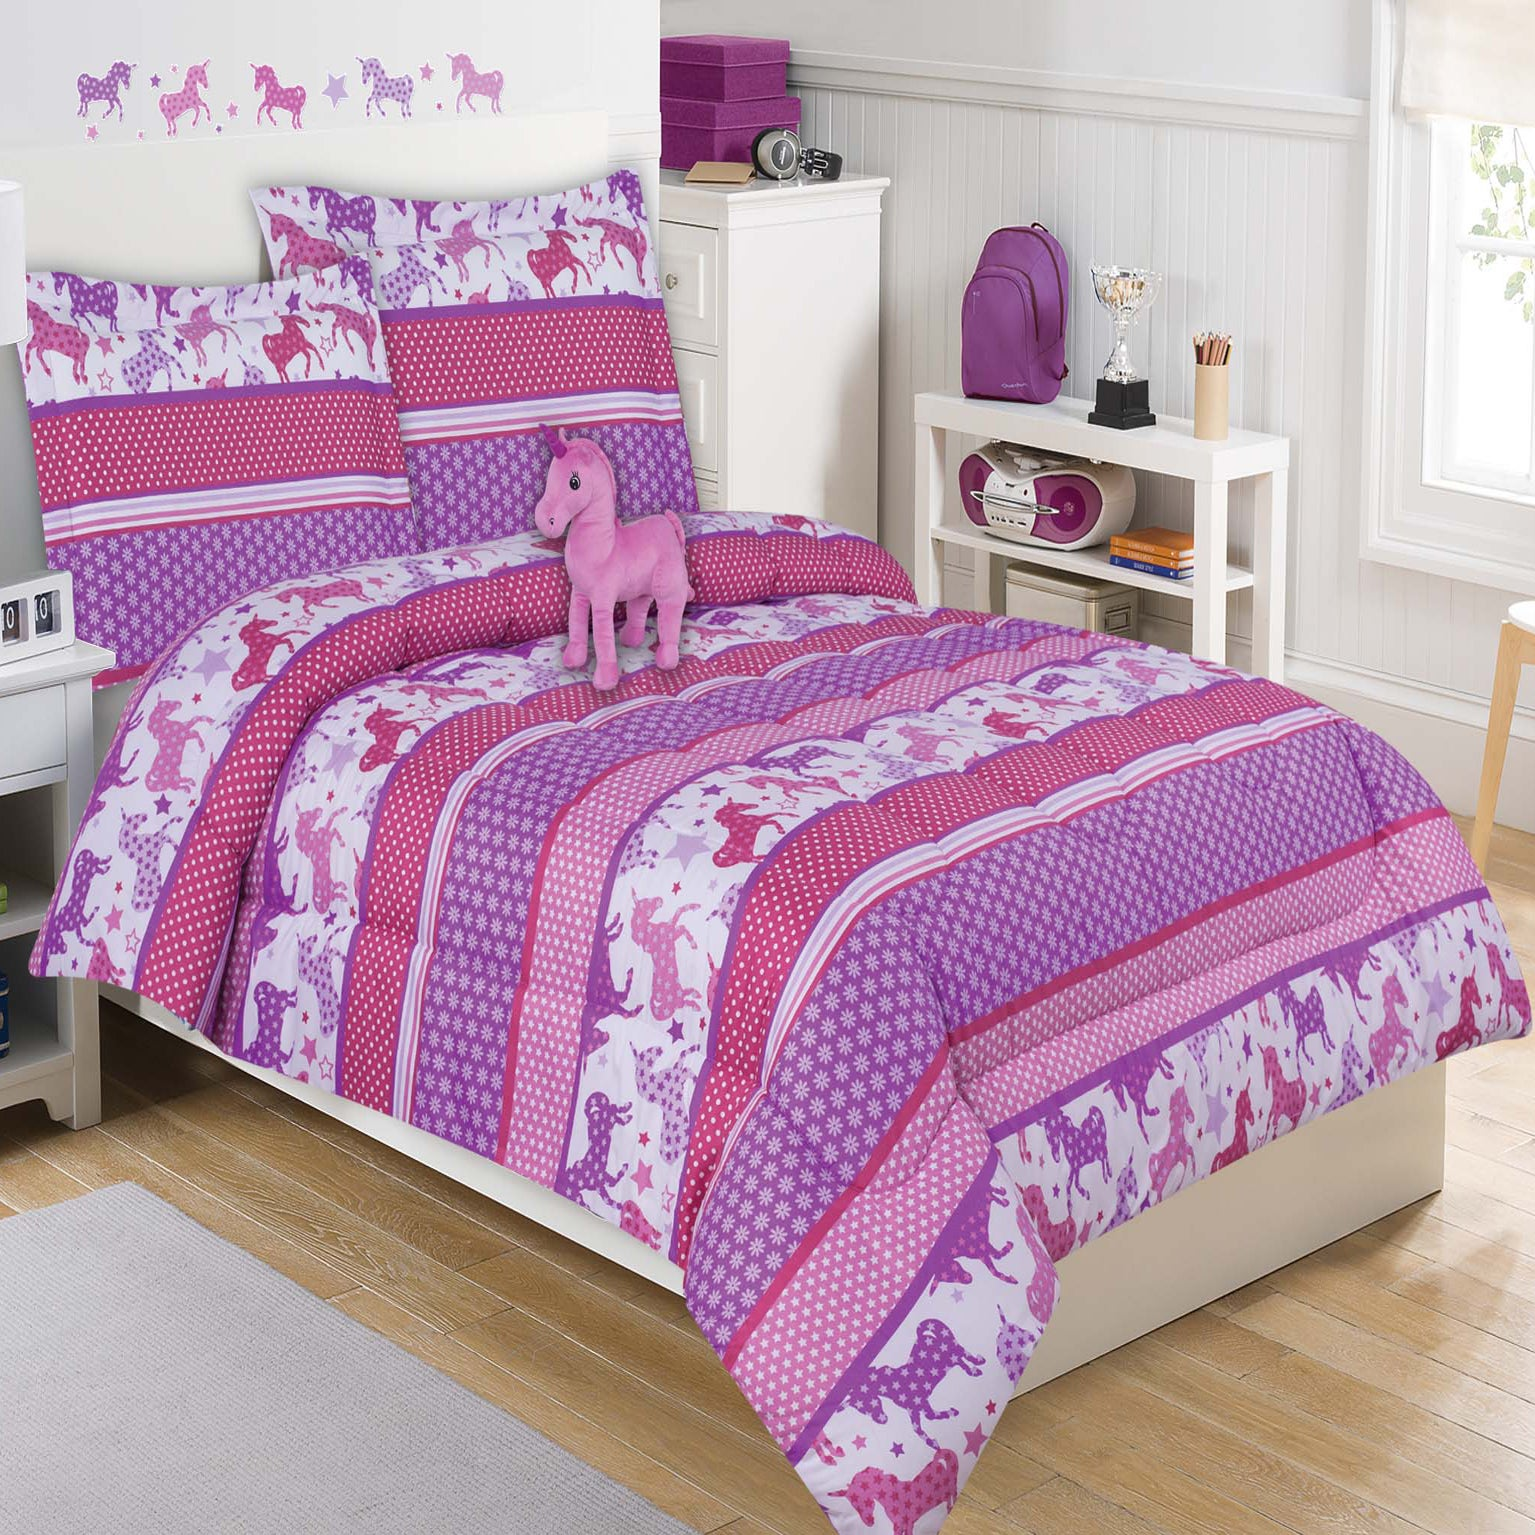 within your bed walmart sets sheet exquisite bedroom for girls unicorn idea twin bedding residence